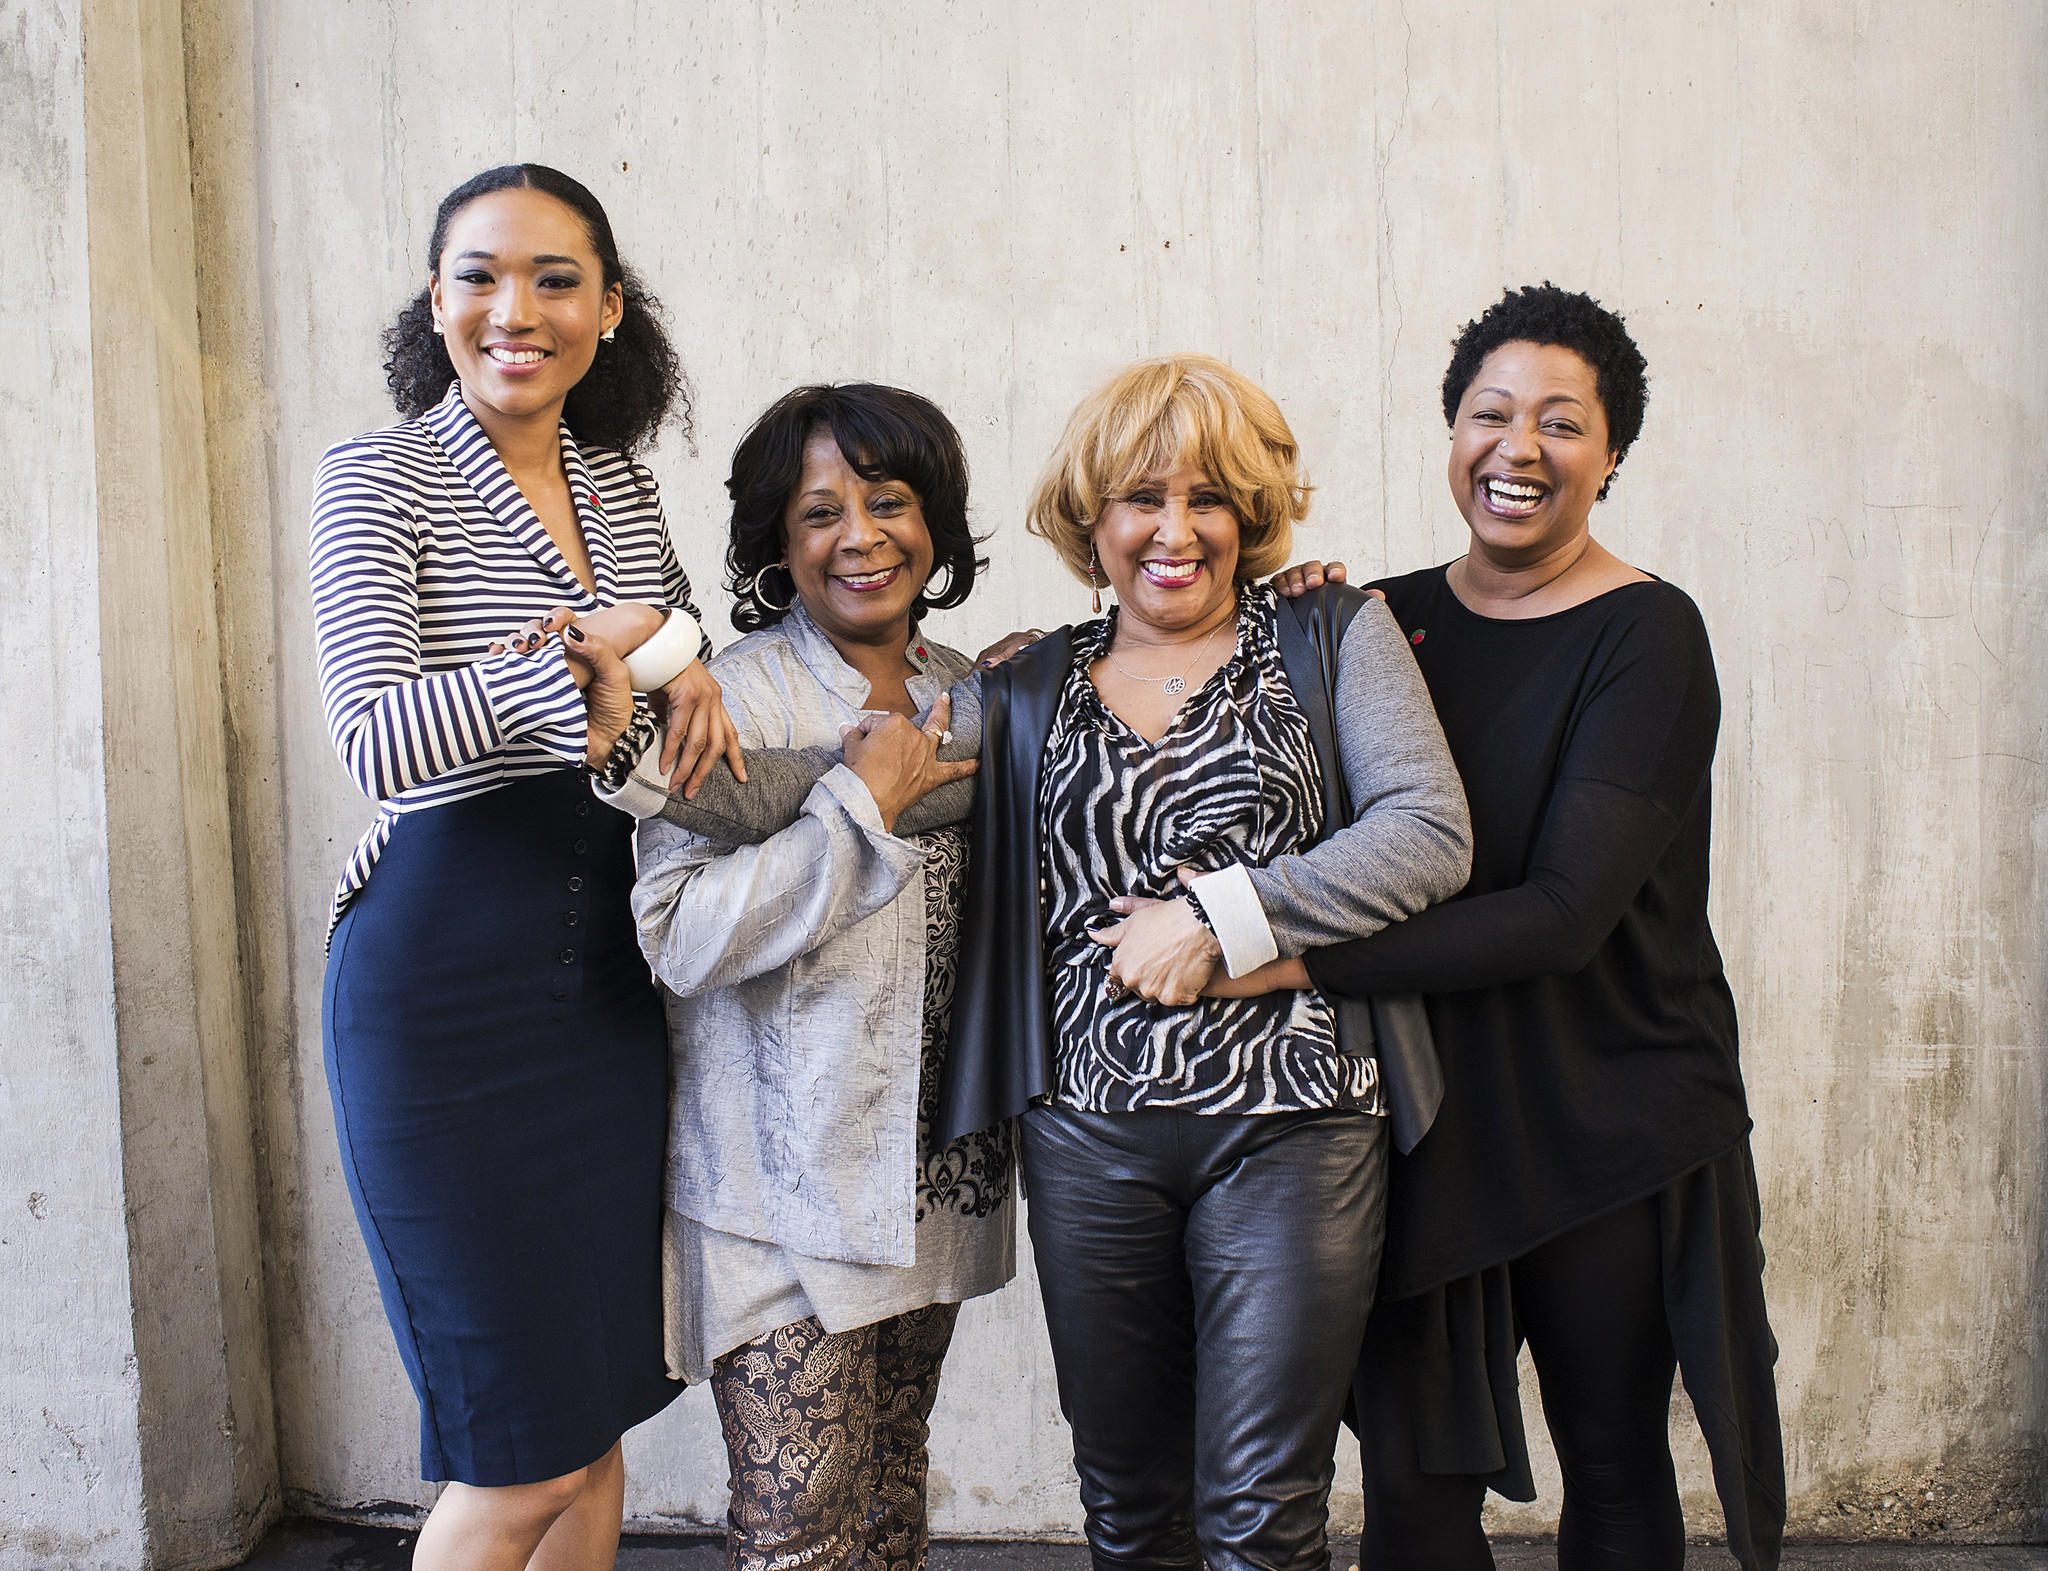 """From left, singers Judith Hill, Merry Clayton, Darlene Love and Lisa Fischer pose for a portrait in Pasadena, where they were performing the national anthem at the Rose Bowl football game. The four women are backup singers featured in the documentary film """"20 Feet From Stardom."""""""